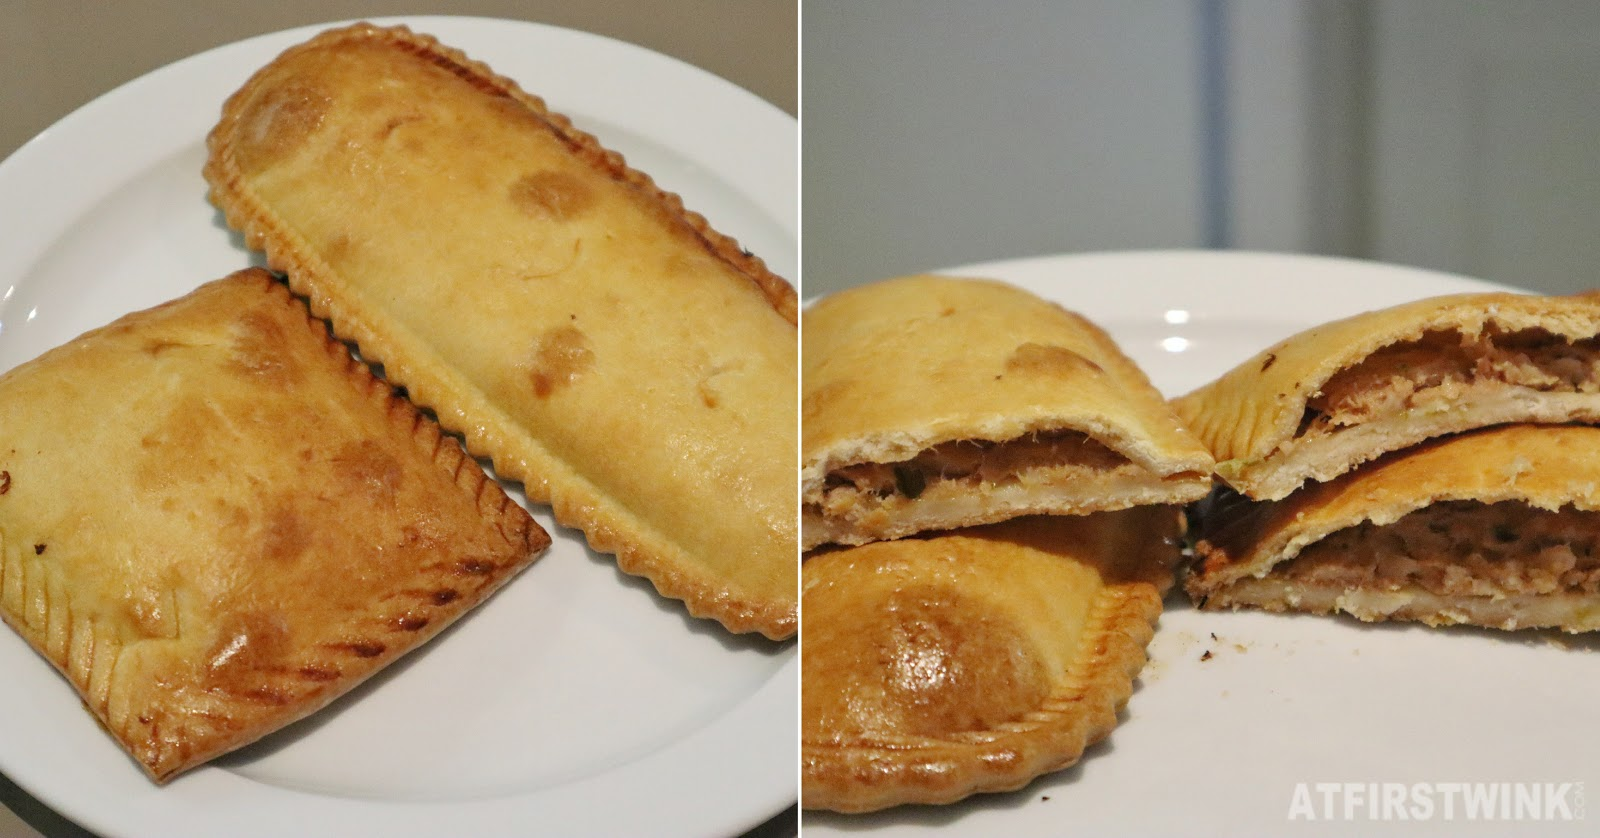 Barcelona savory pastries tuna onion filling mercadona supermarket